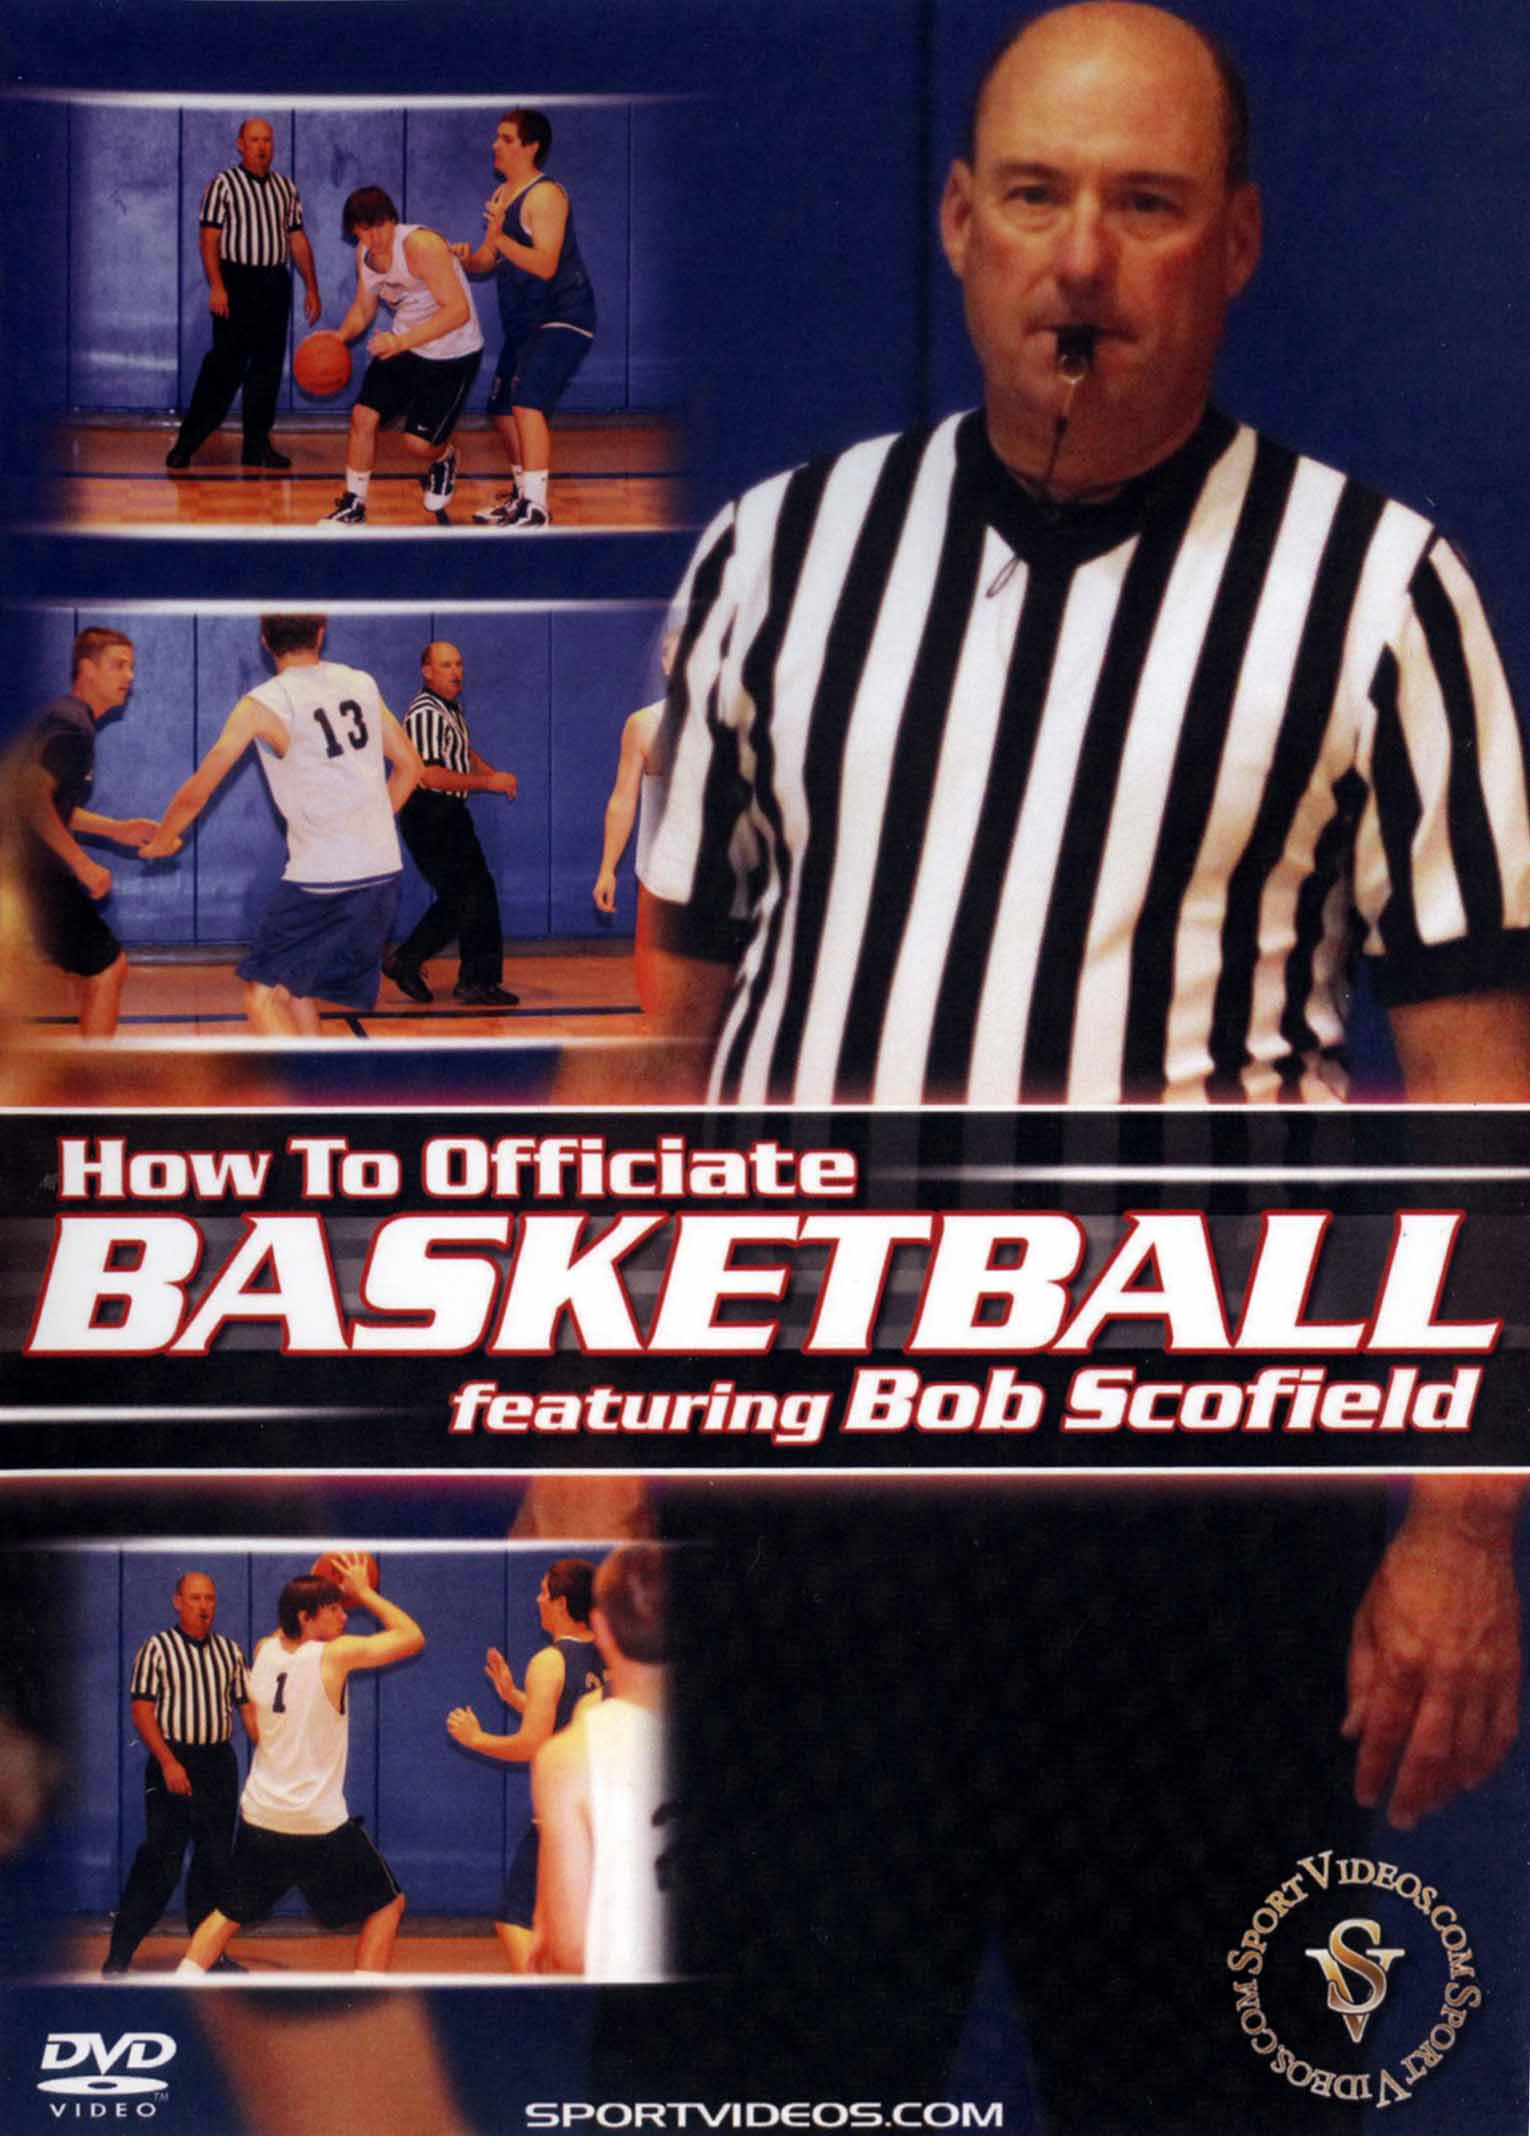 Bob Scofield: How to Officiate Basketball